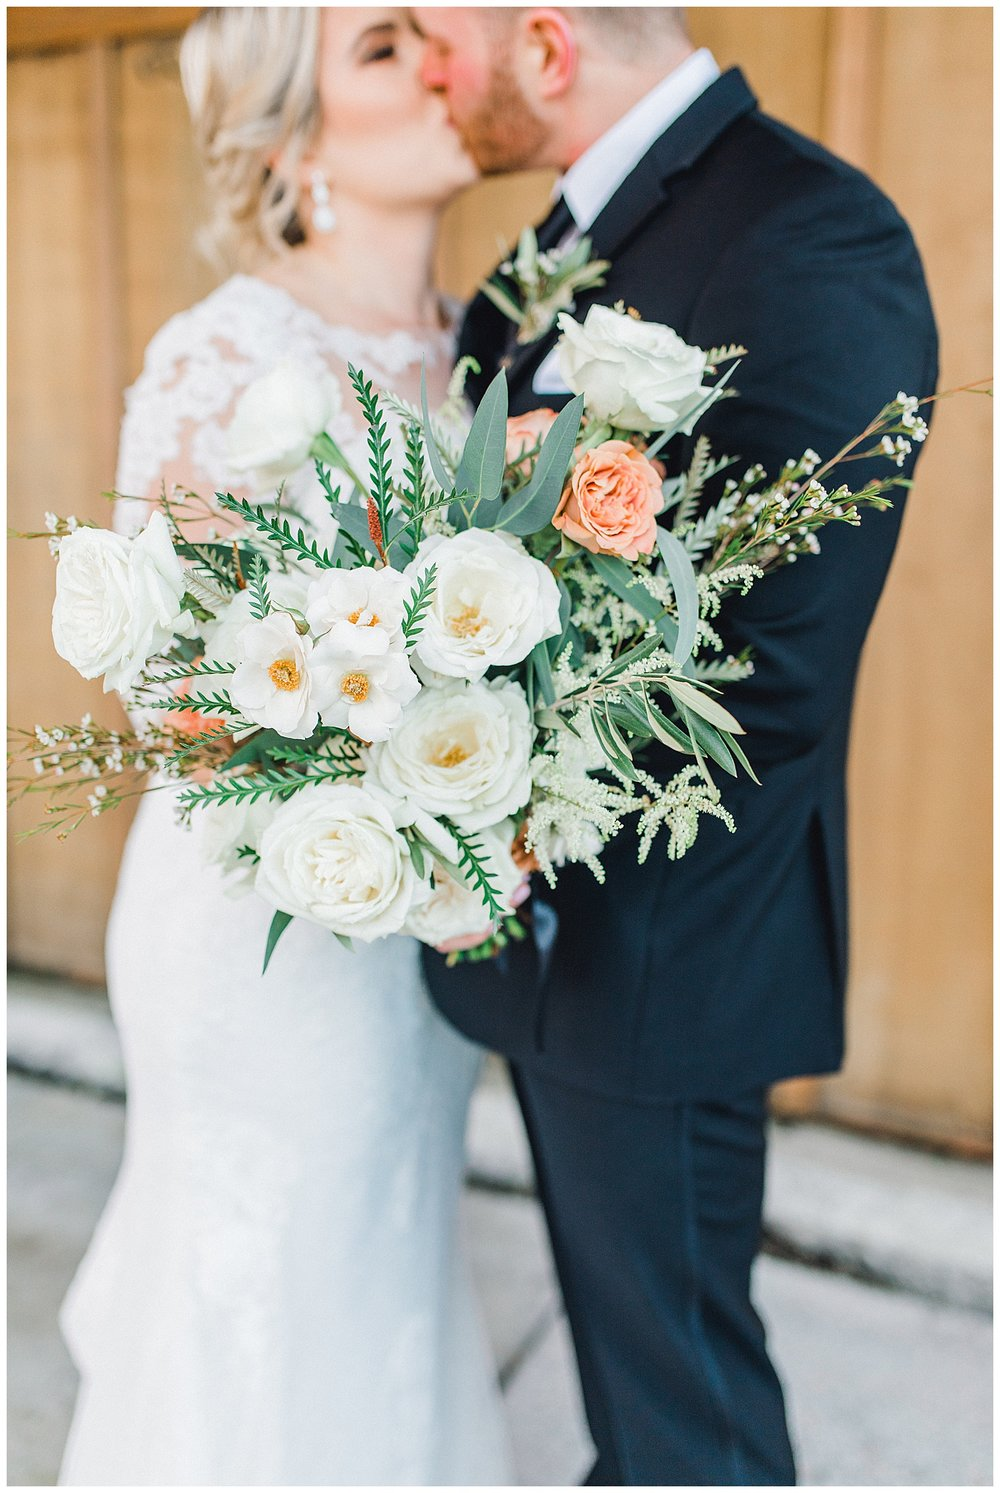 ERC-7114_A beautiful winter wedding in Snohomish, Washington at Thomas Family Farm was simply perfect.  This rustic and modern styled wedding was dripping with romance and photographed by Emma Rose Company, a pacific northwest wedding photographer..jpg